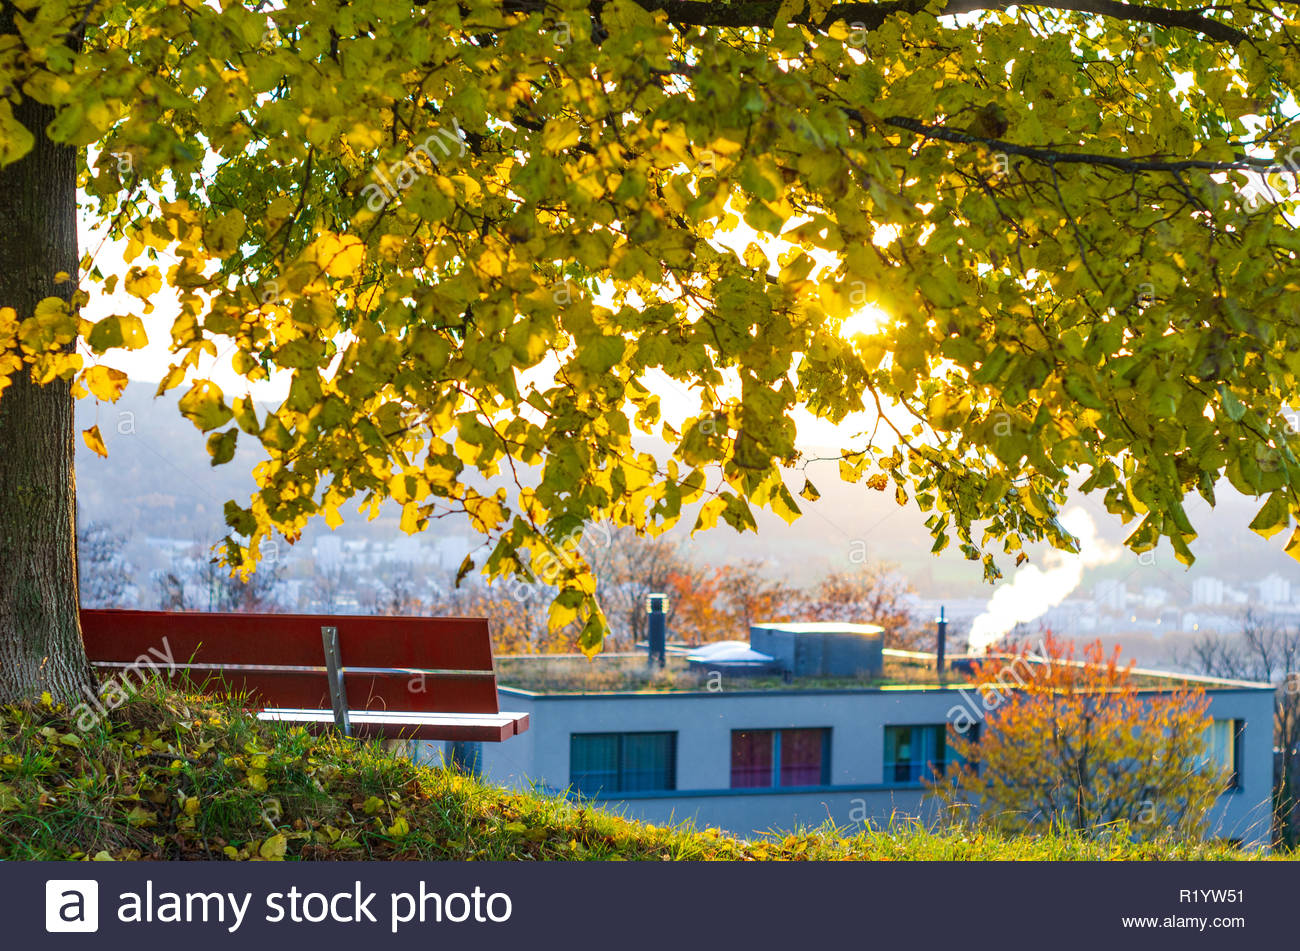 Bench under a tree in autumn backlit city vista in the background 1300x951